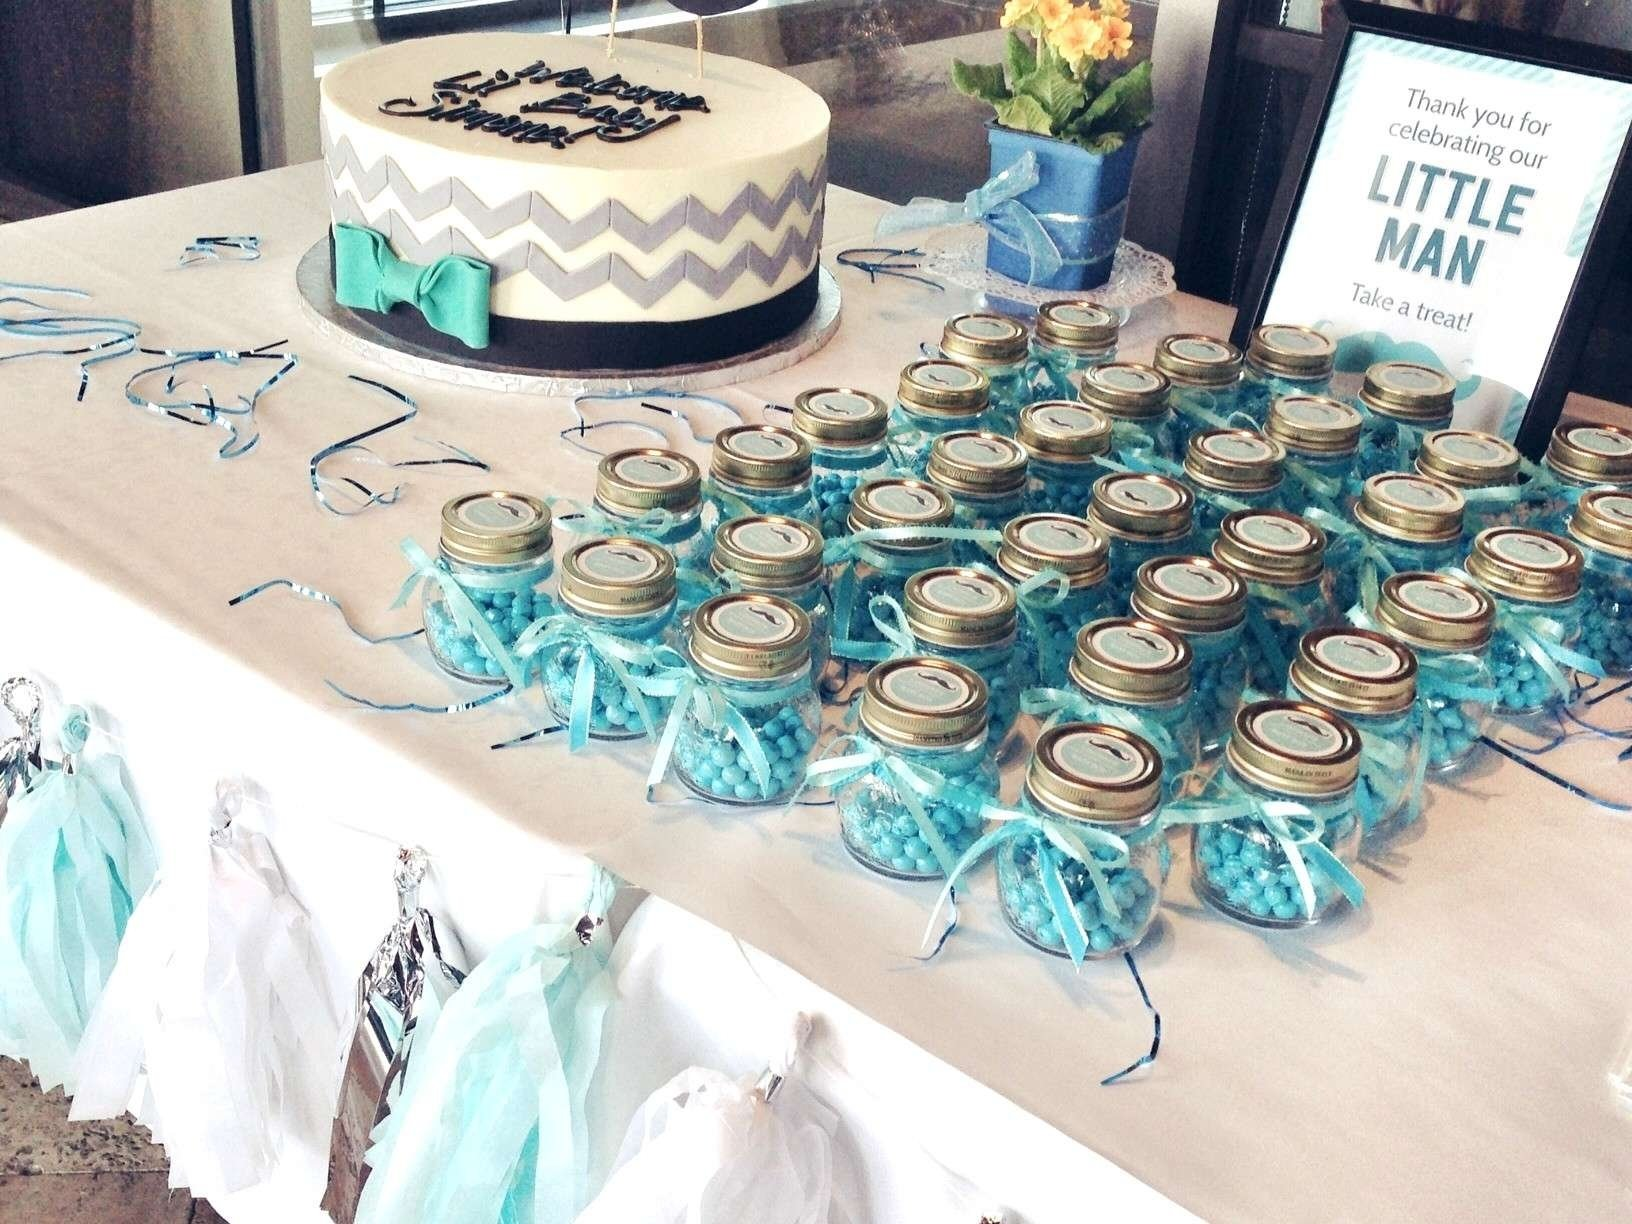 10 Cute Bow Tie Baby Shower Ideas ideas bow tie baby shower themed little man favor and mustache 2020